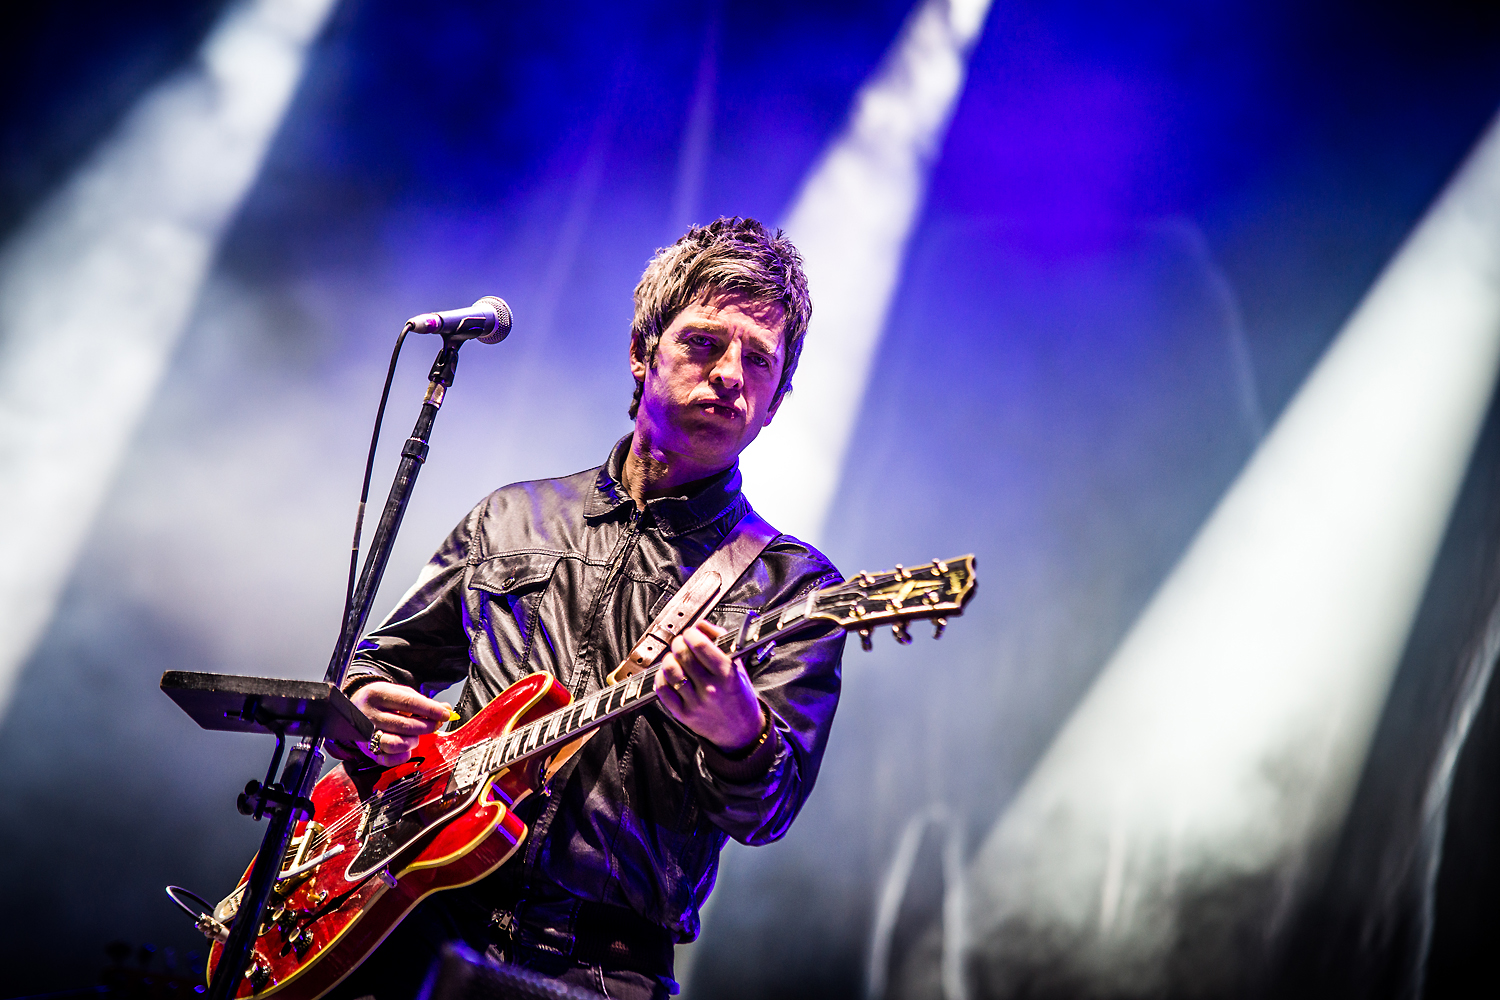 BKS 732 - Noel Gallagher's High Flying Birds